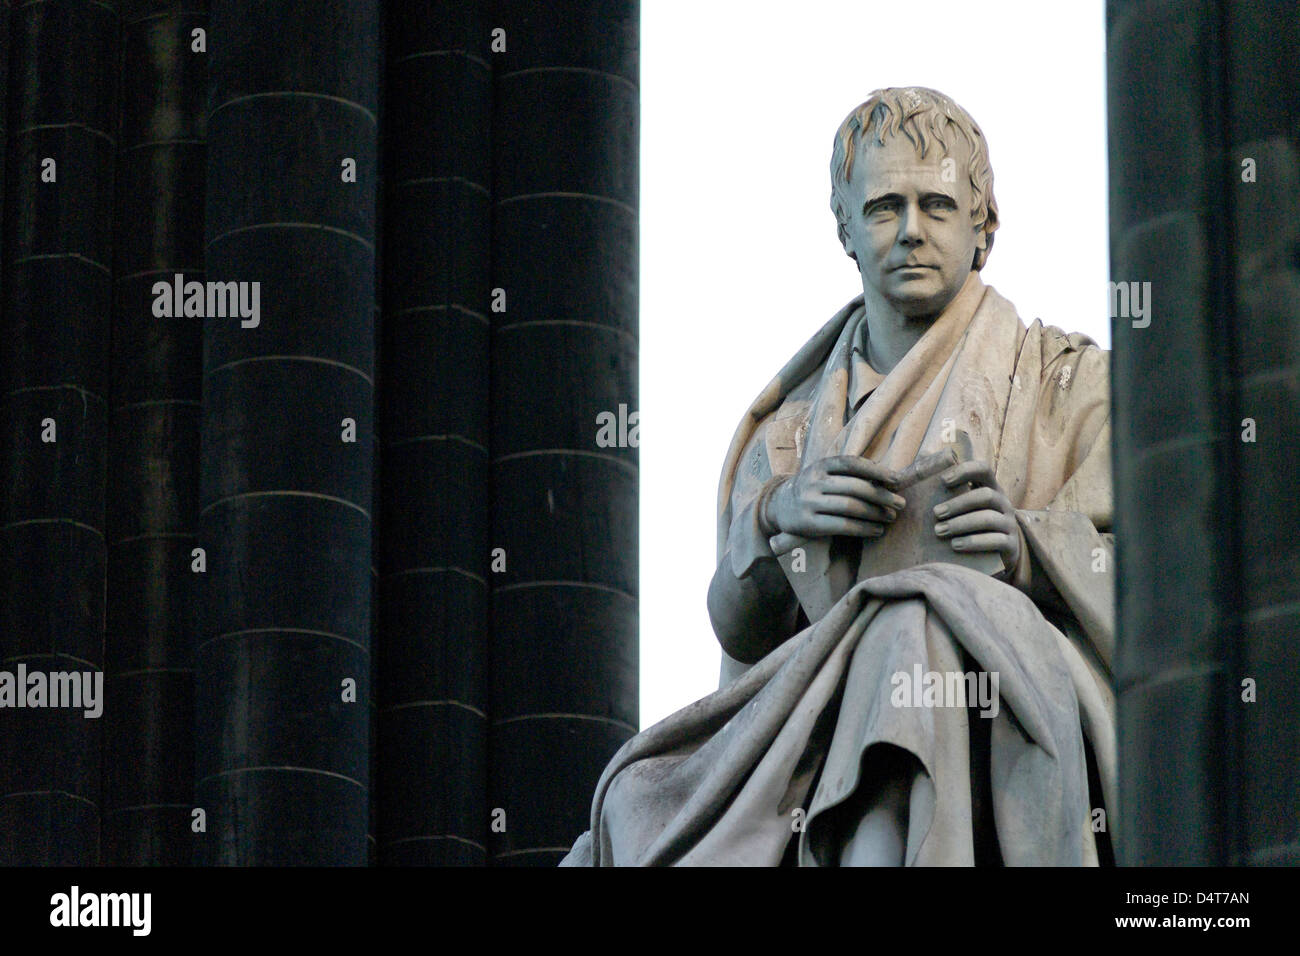 detail of alabaster statue of sir walter scott at foot of monument - Stock Image